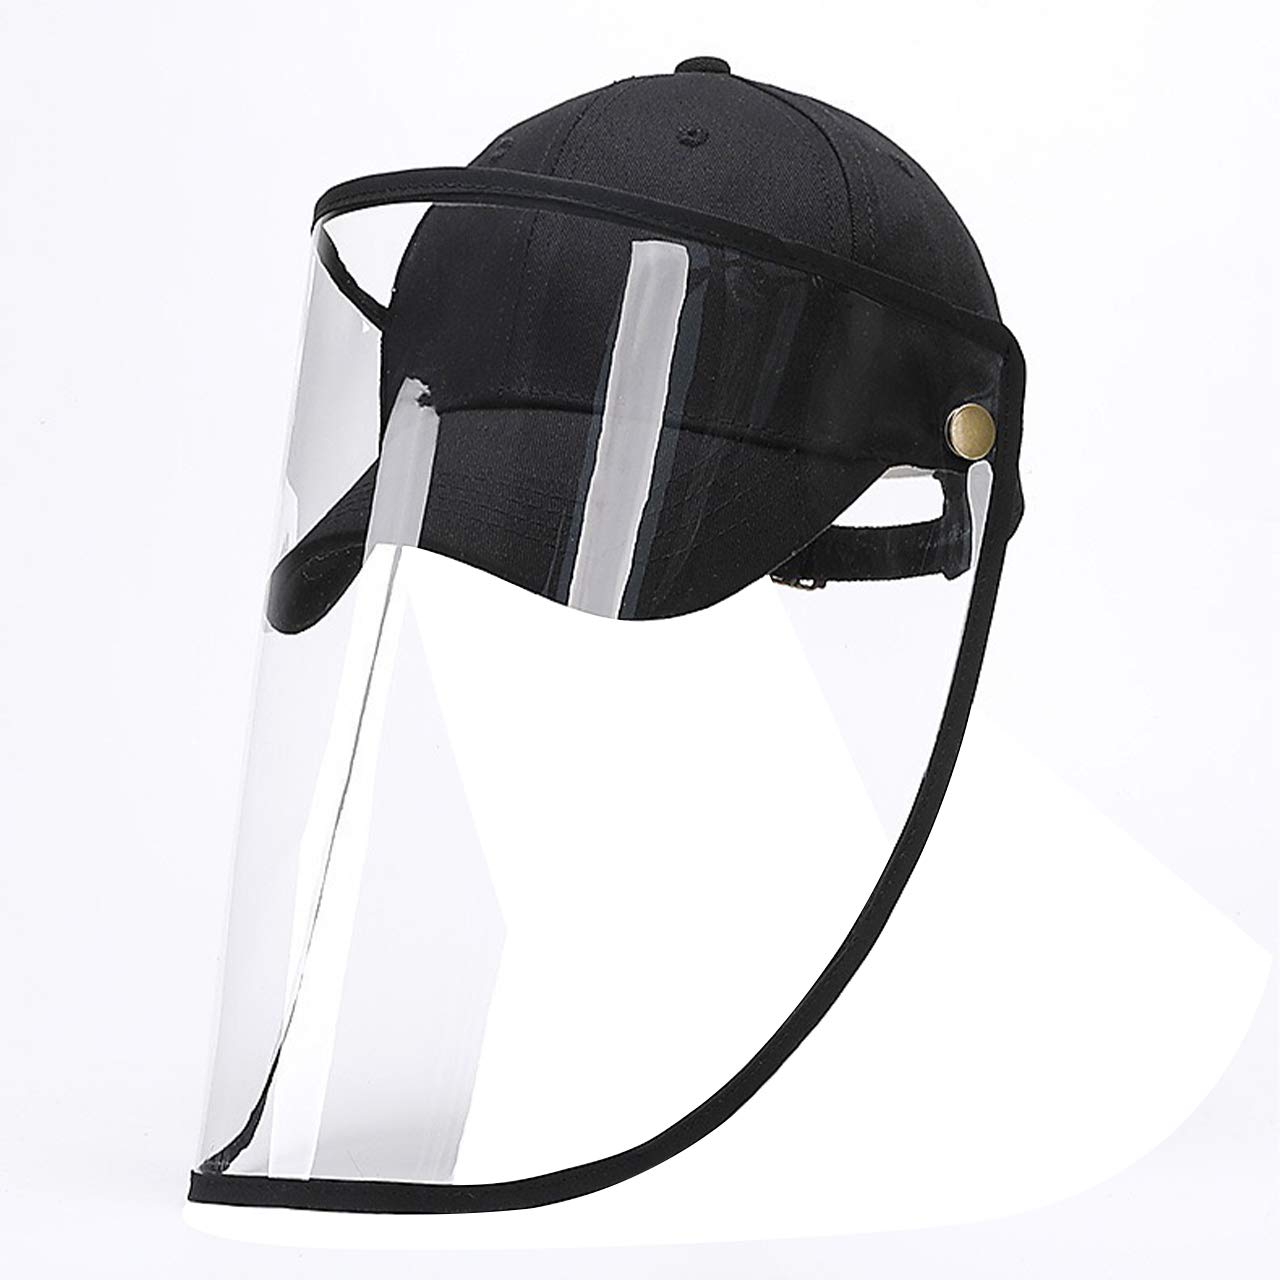 Safety Protective Face Shield Hat Full-face Protective Baseball Cap Anti Splash Safety Facial Hat, Face Eyes Shield Isolation Hat, Anti-Saliva Anti-Spitting Cover Outdoor Sun For Men and Women Black